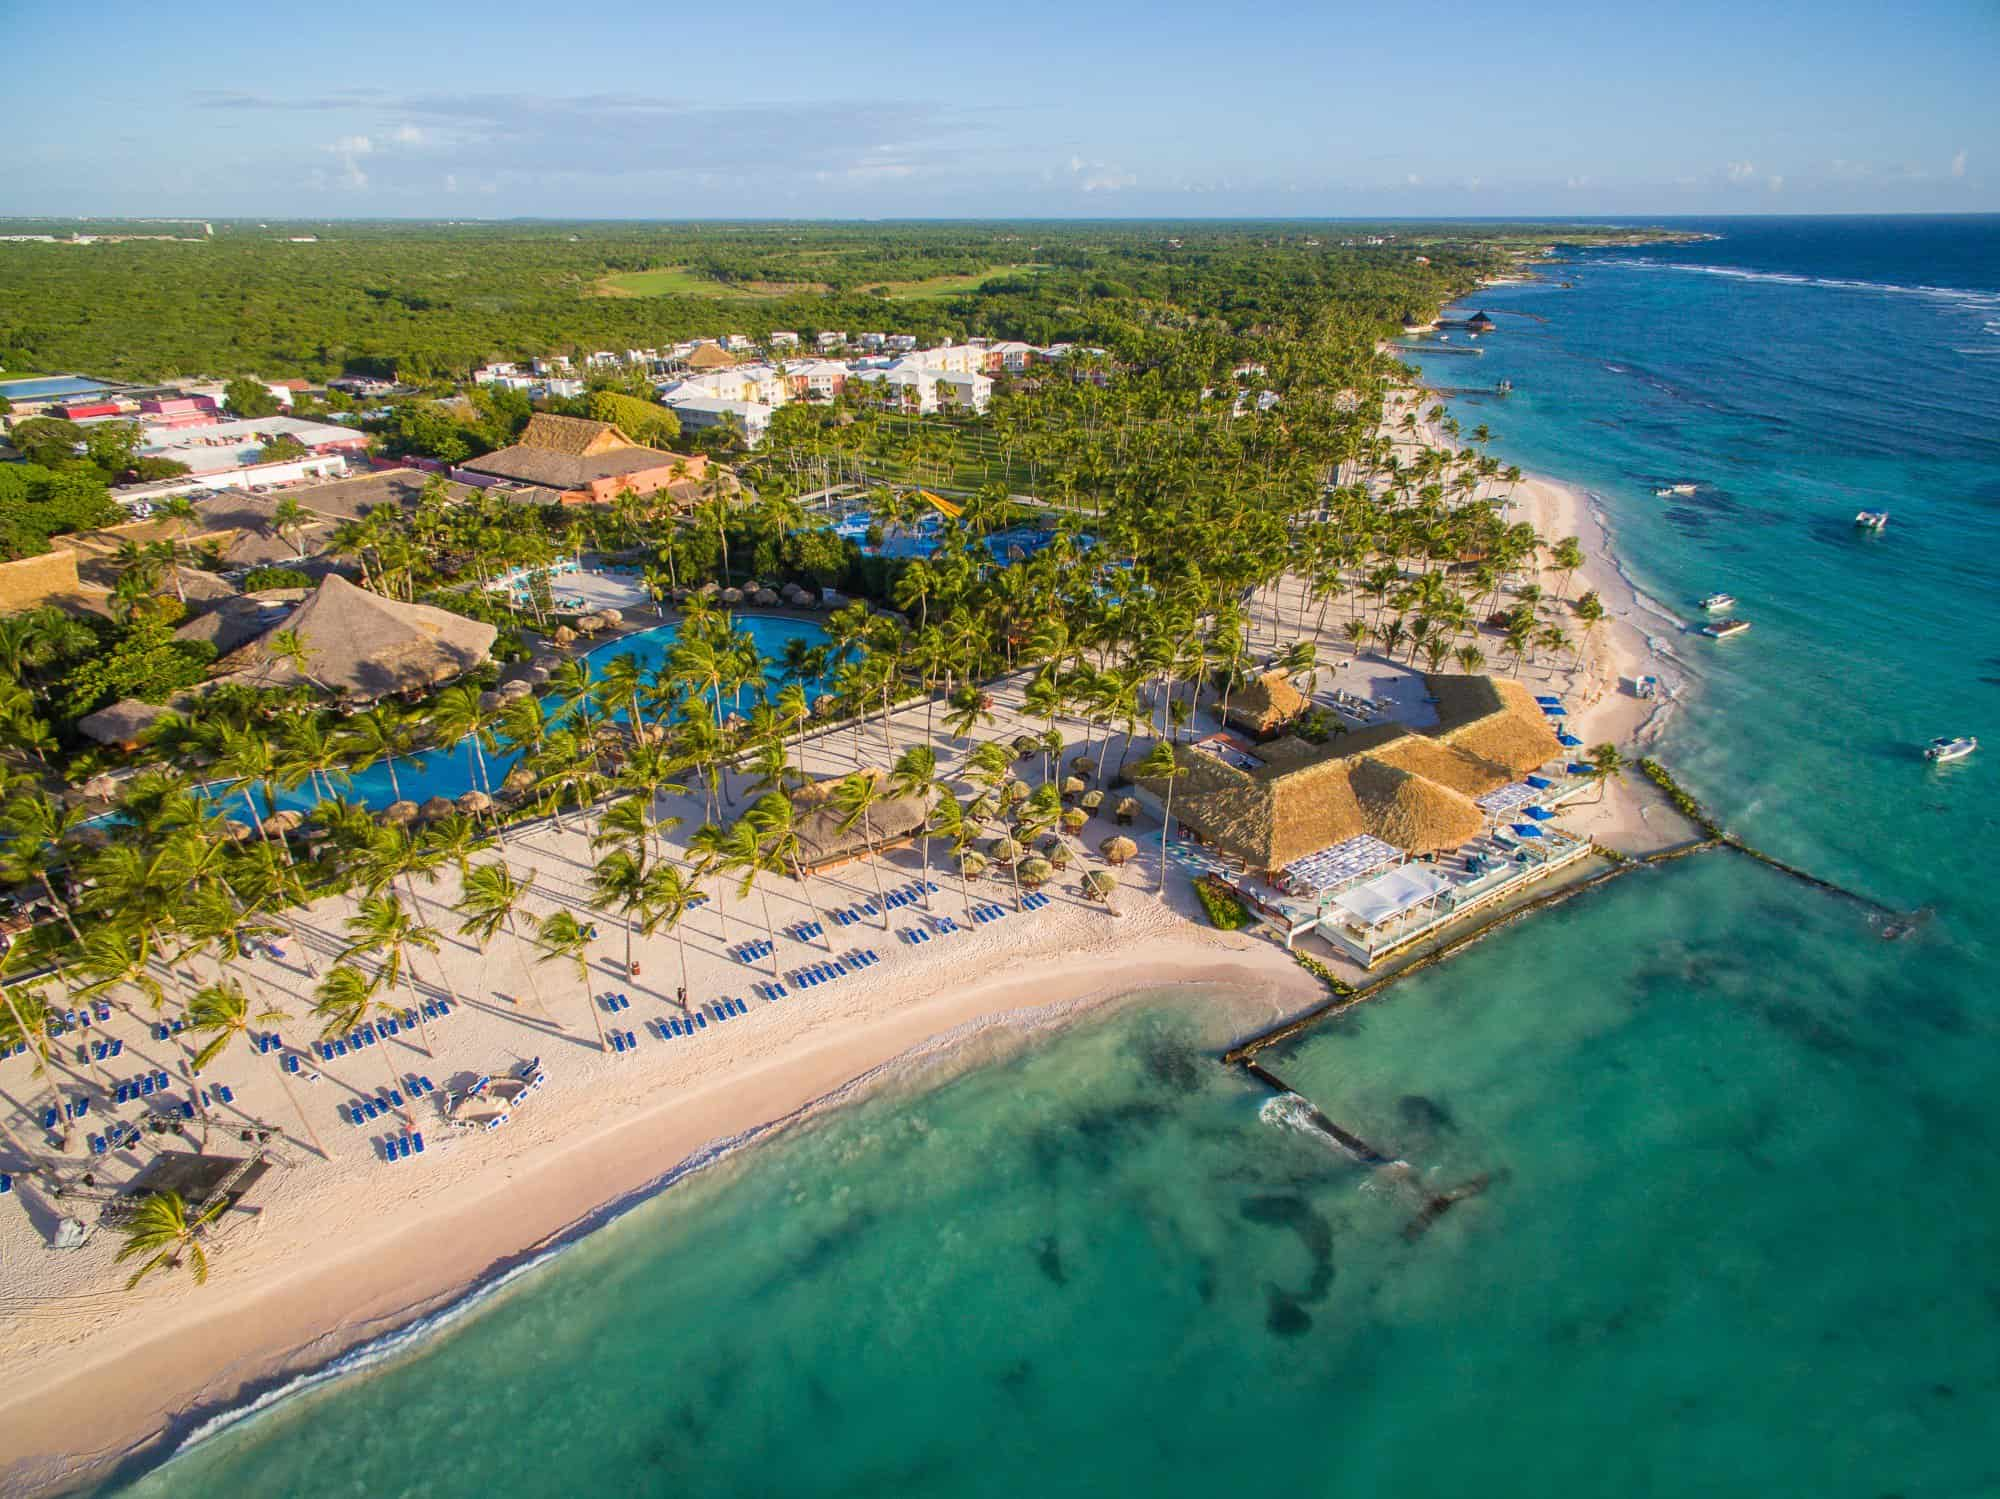 Club Med Punta Cana: Sun, Sand, Surf, and the Circus!